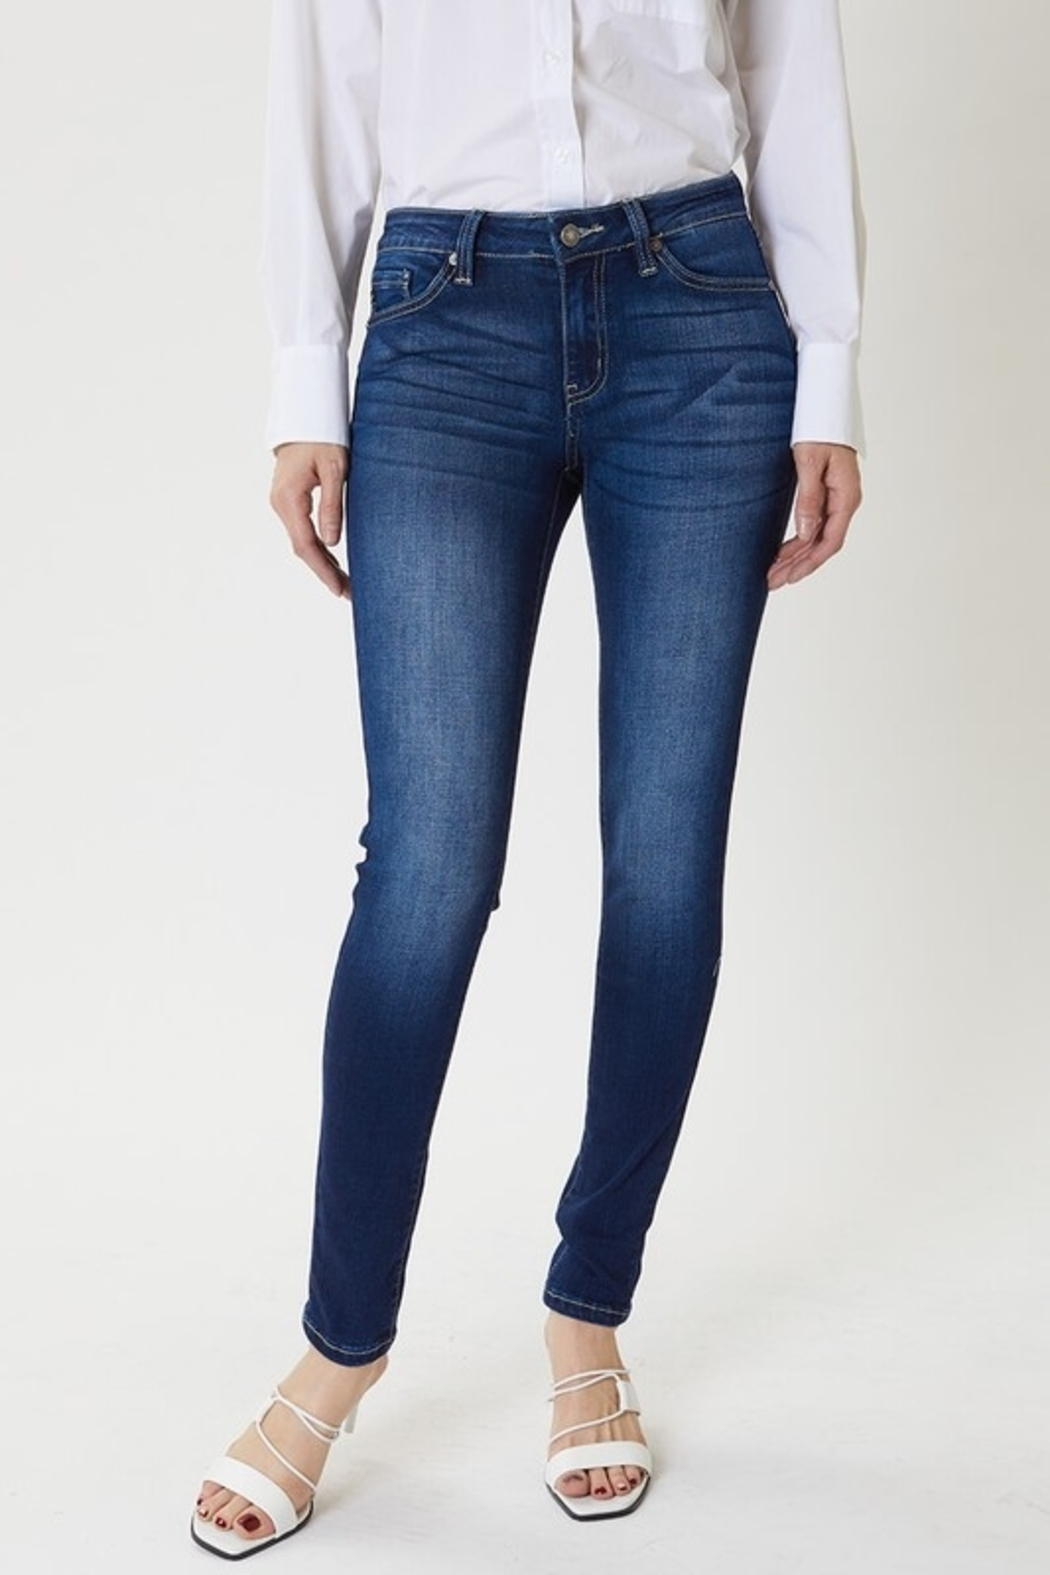 KanCan Mid Rise Dark Wash Super Skinny jeans (KC7085DH) - Front Cropped Image